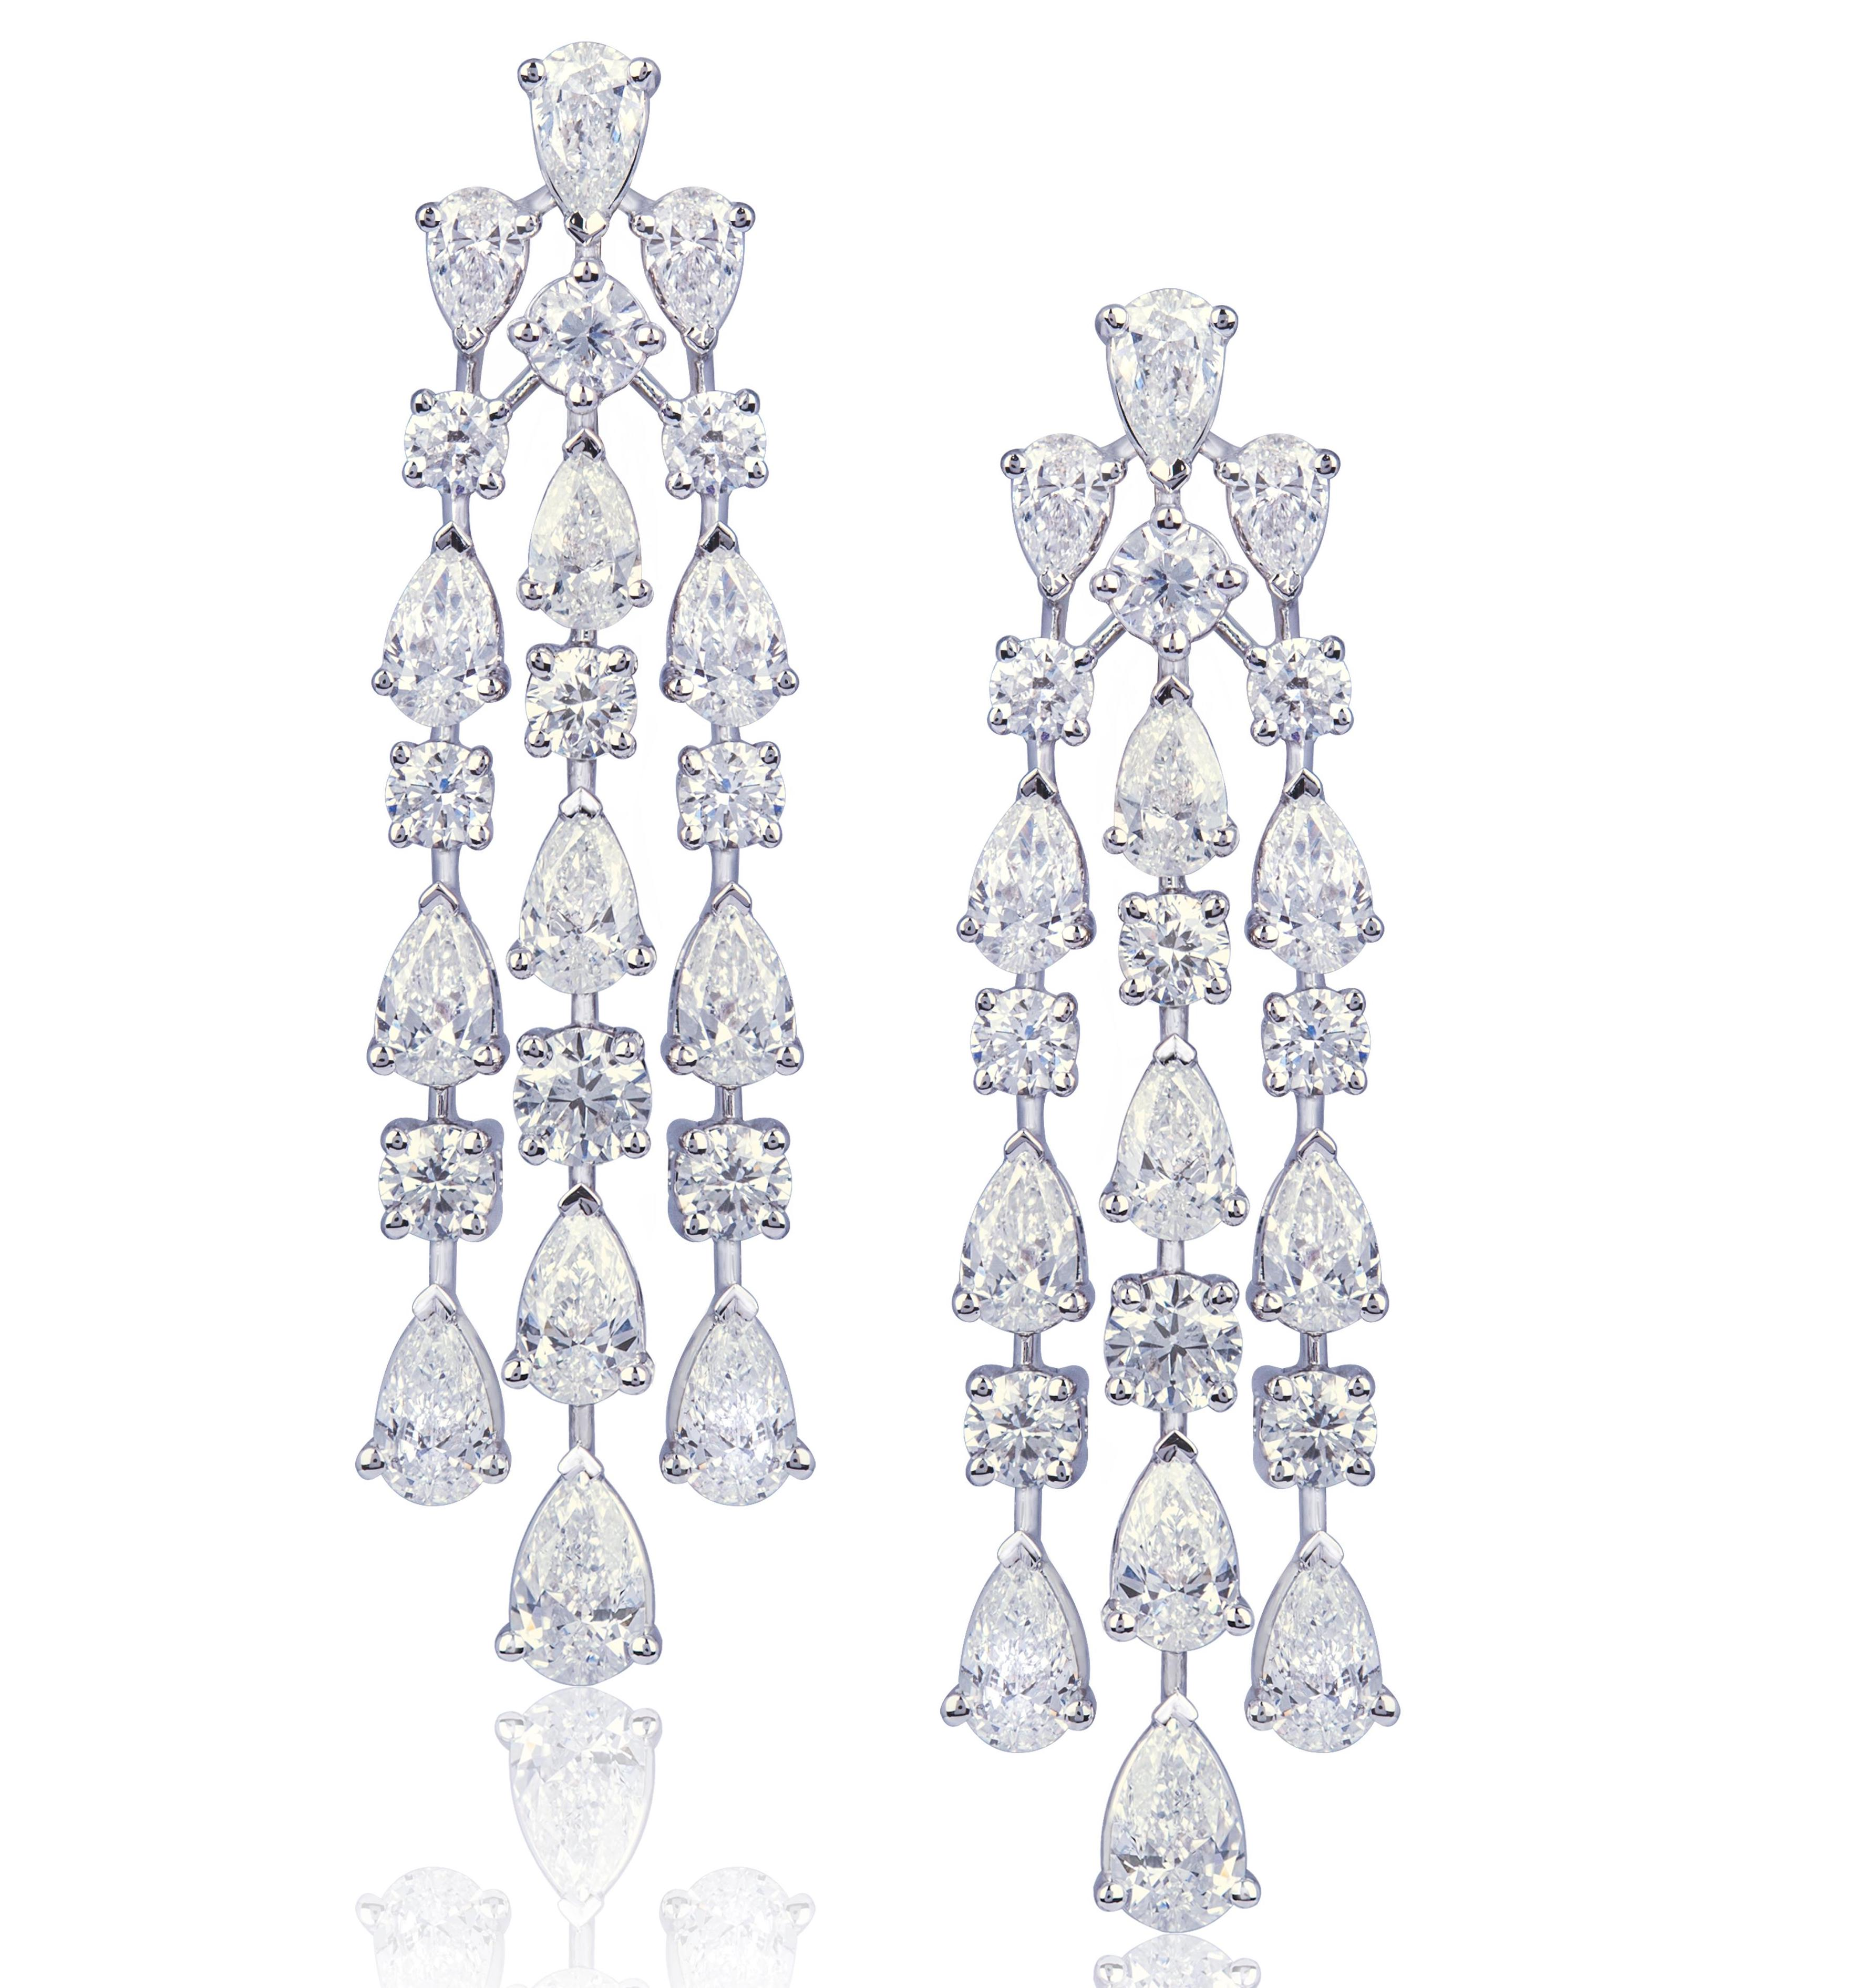 Red Diamond Chandelier Earrings: Friday 5: Chandelier Earrings